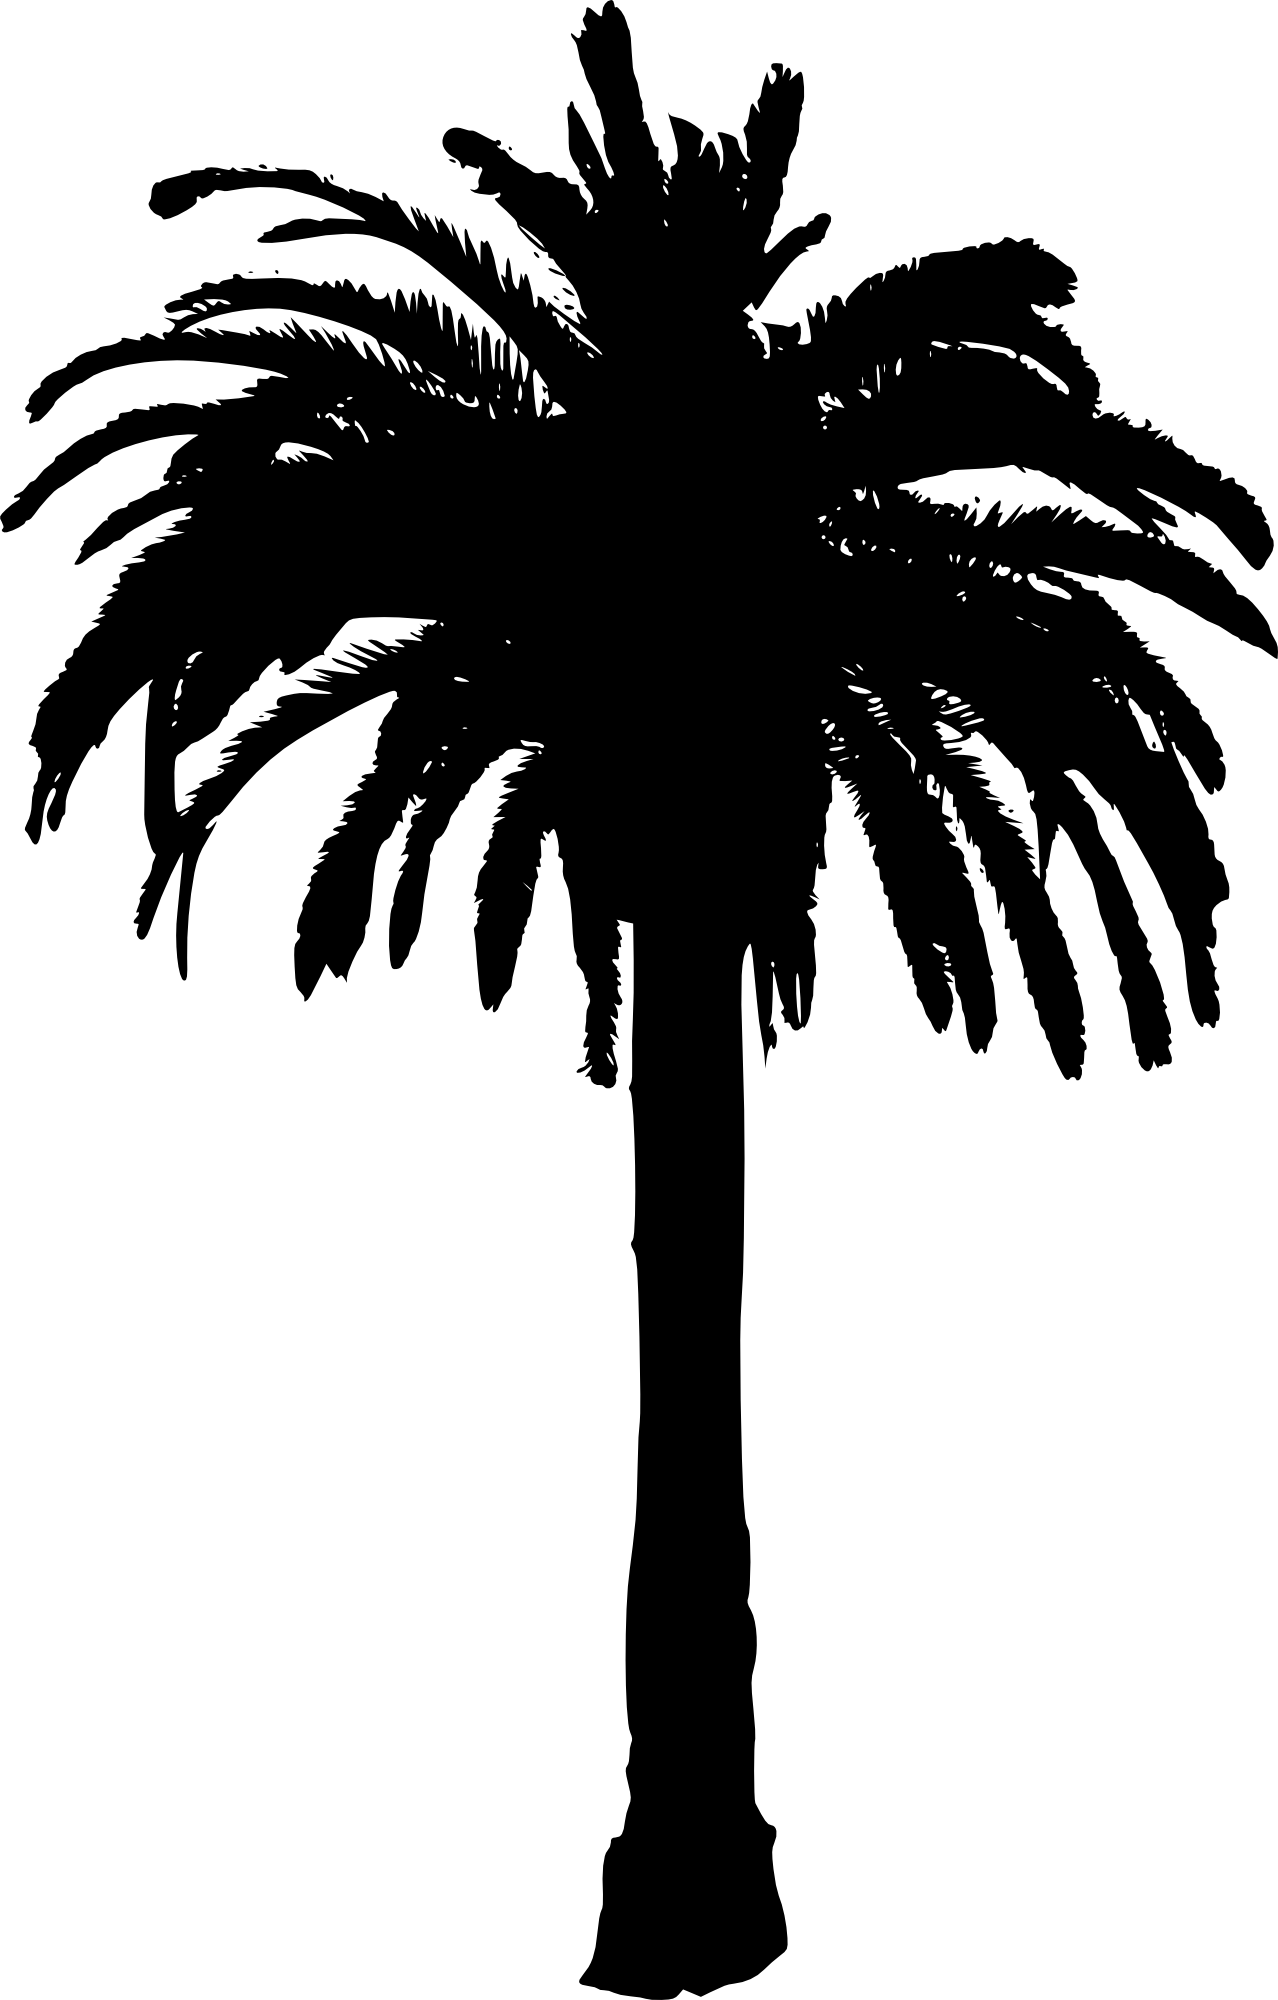 Palm tree transparent background png. Silhouette pictures of trees